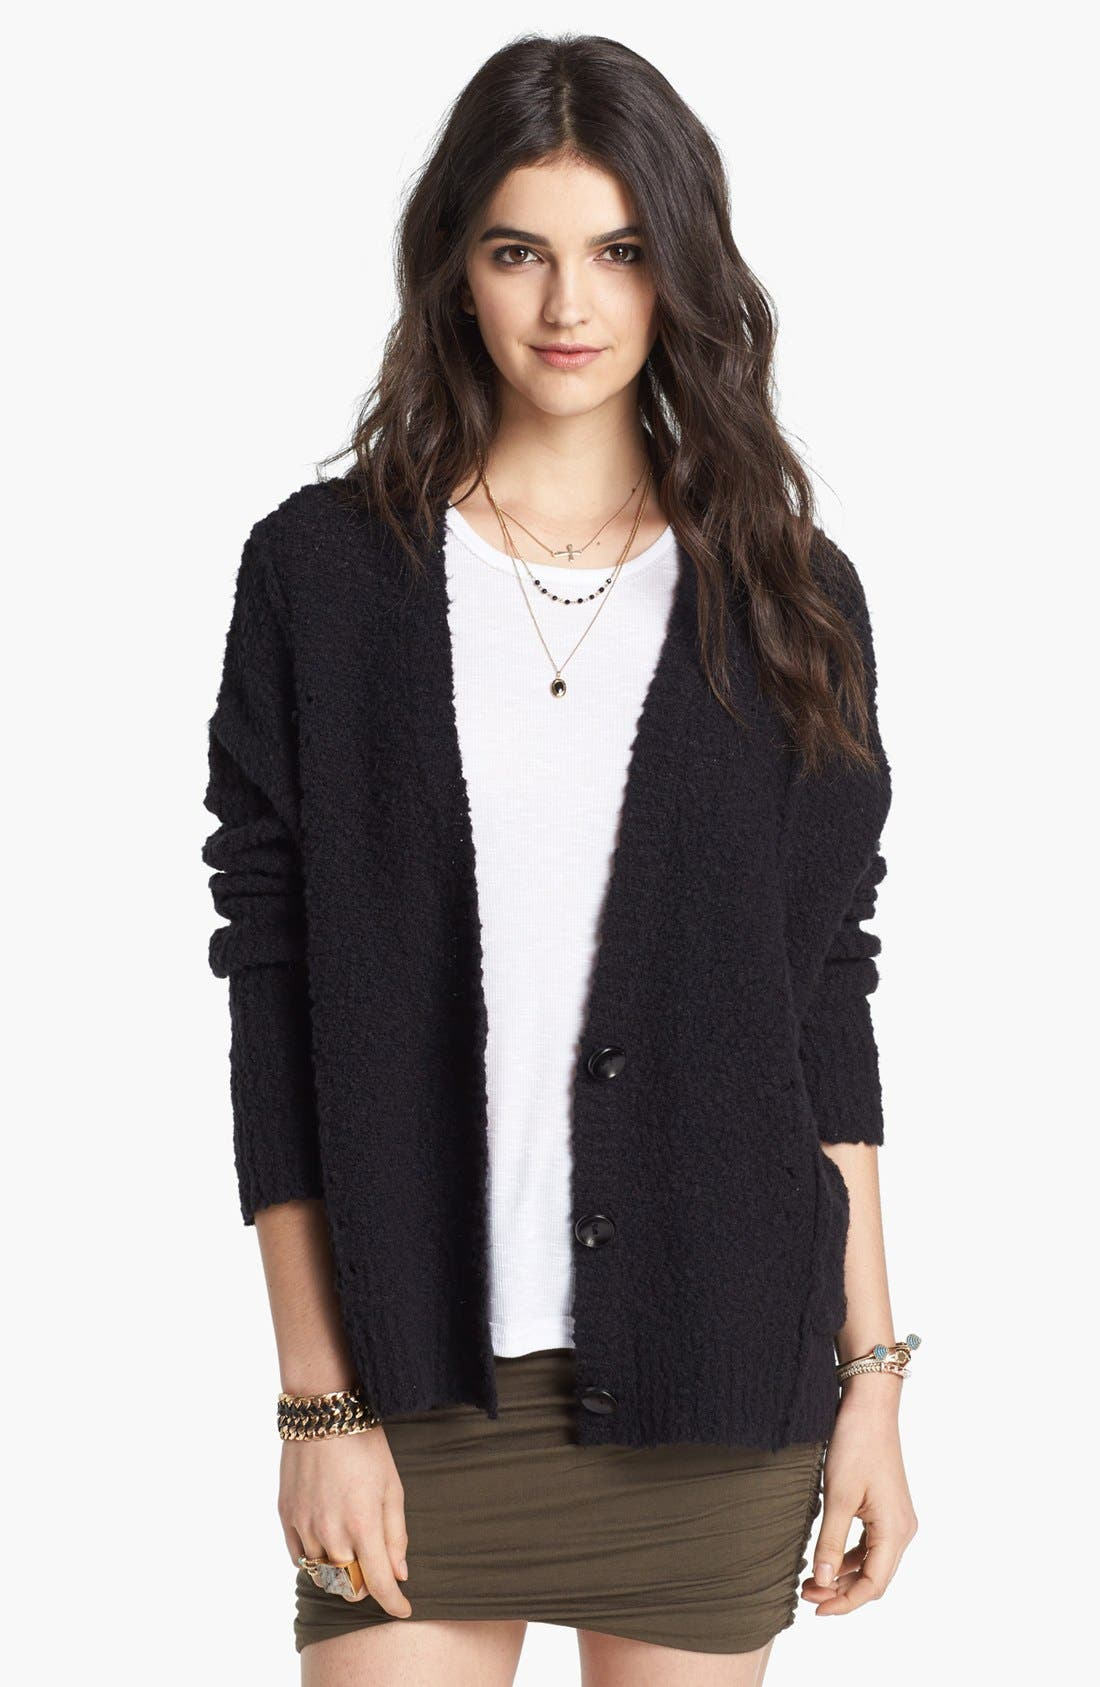 Alternate Image 1 Selected - Free People 'Fall Friend' Cardigan